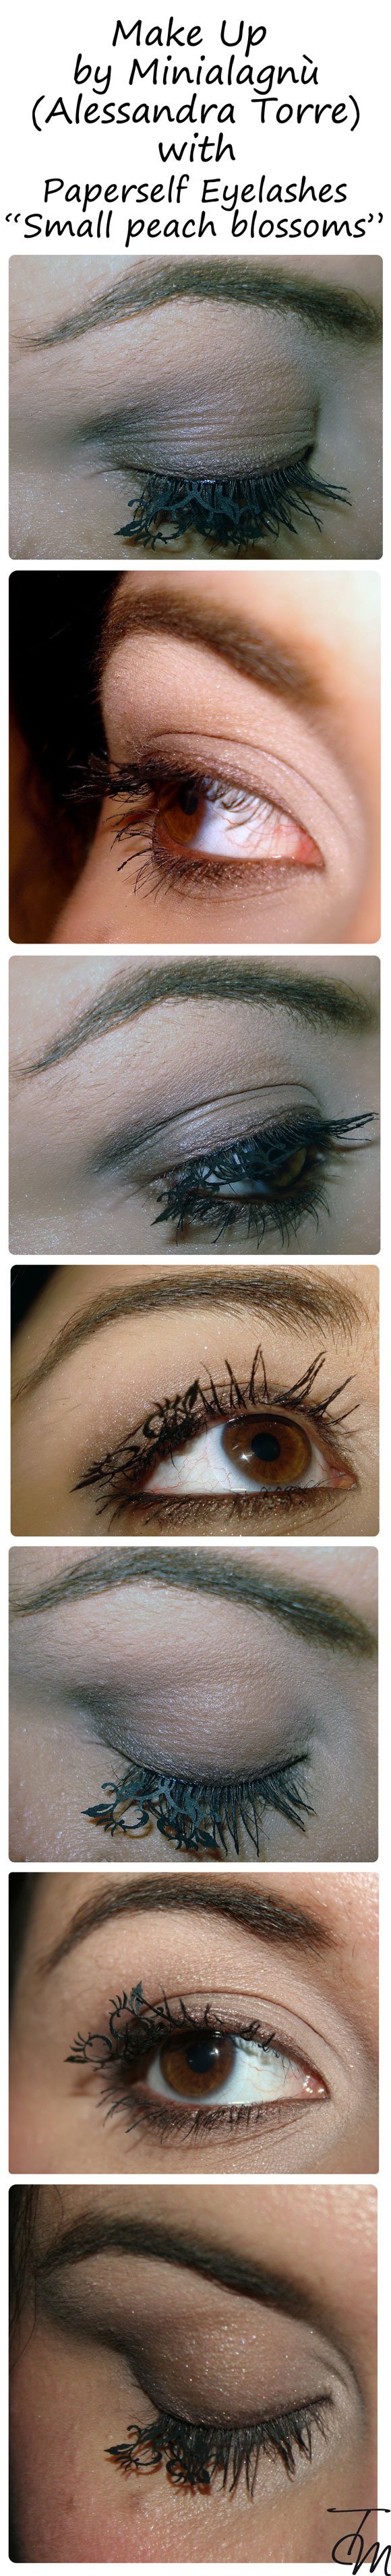 make up by minialagnu alessandra torre with paperself eyelashes small peach blossoms